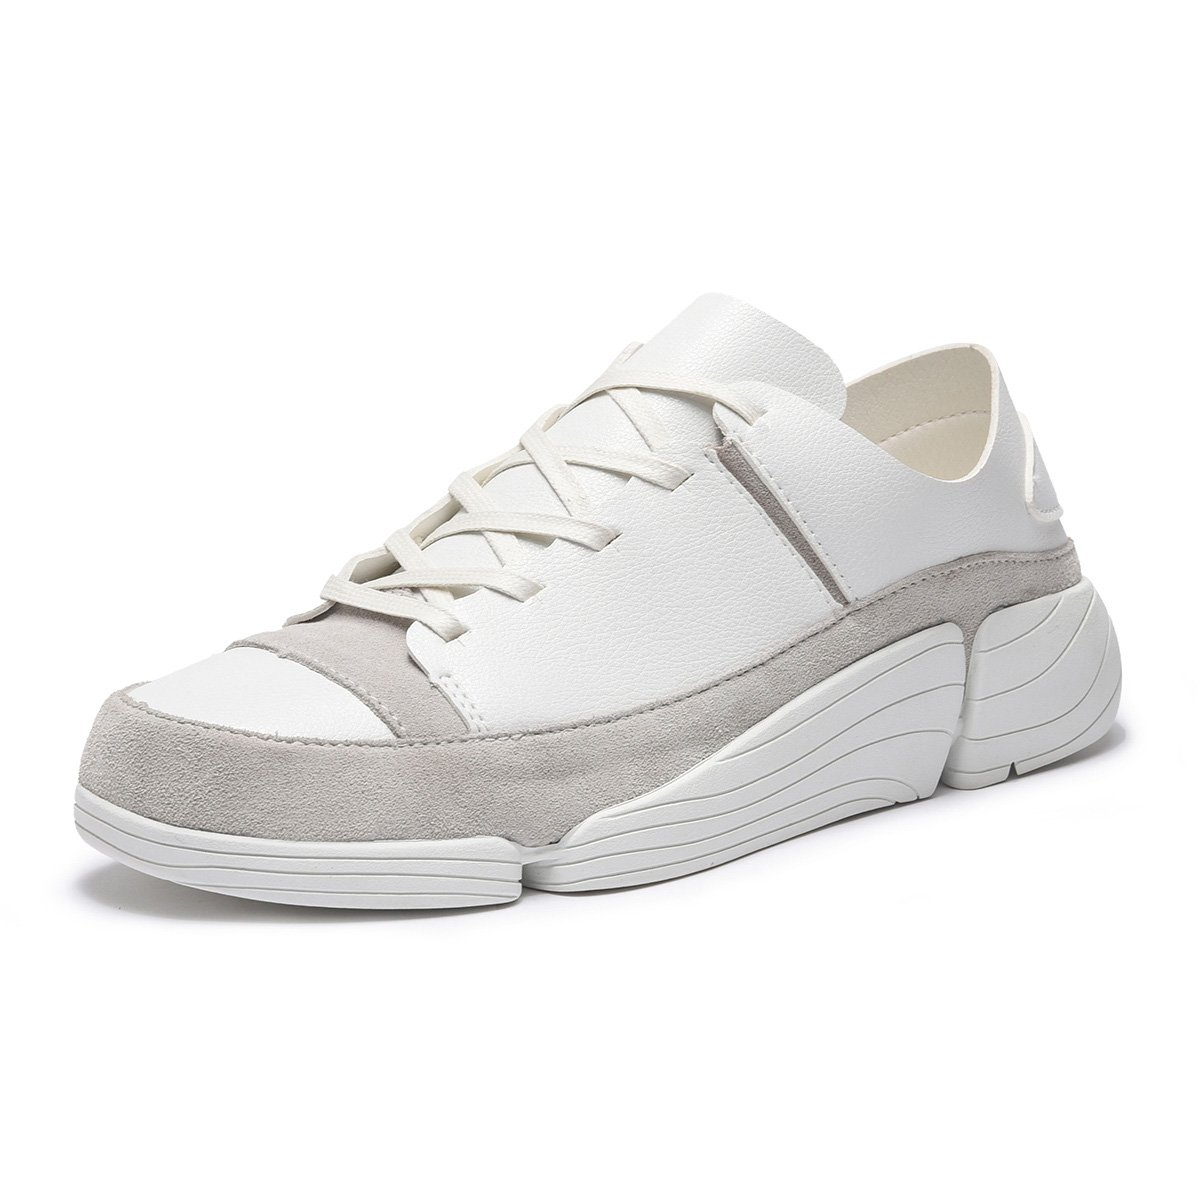 ARTISURE Men's White Genuine Leather Fashion Sneakers Athletic Running Shoes Casual Walking Shoes 11 M US SKS-2088BAI110